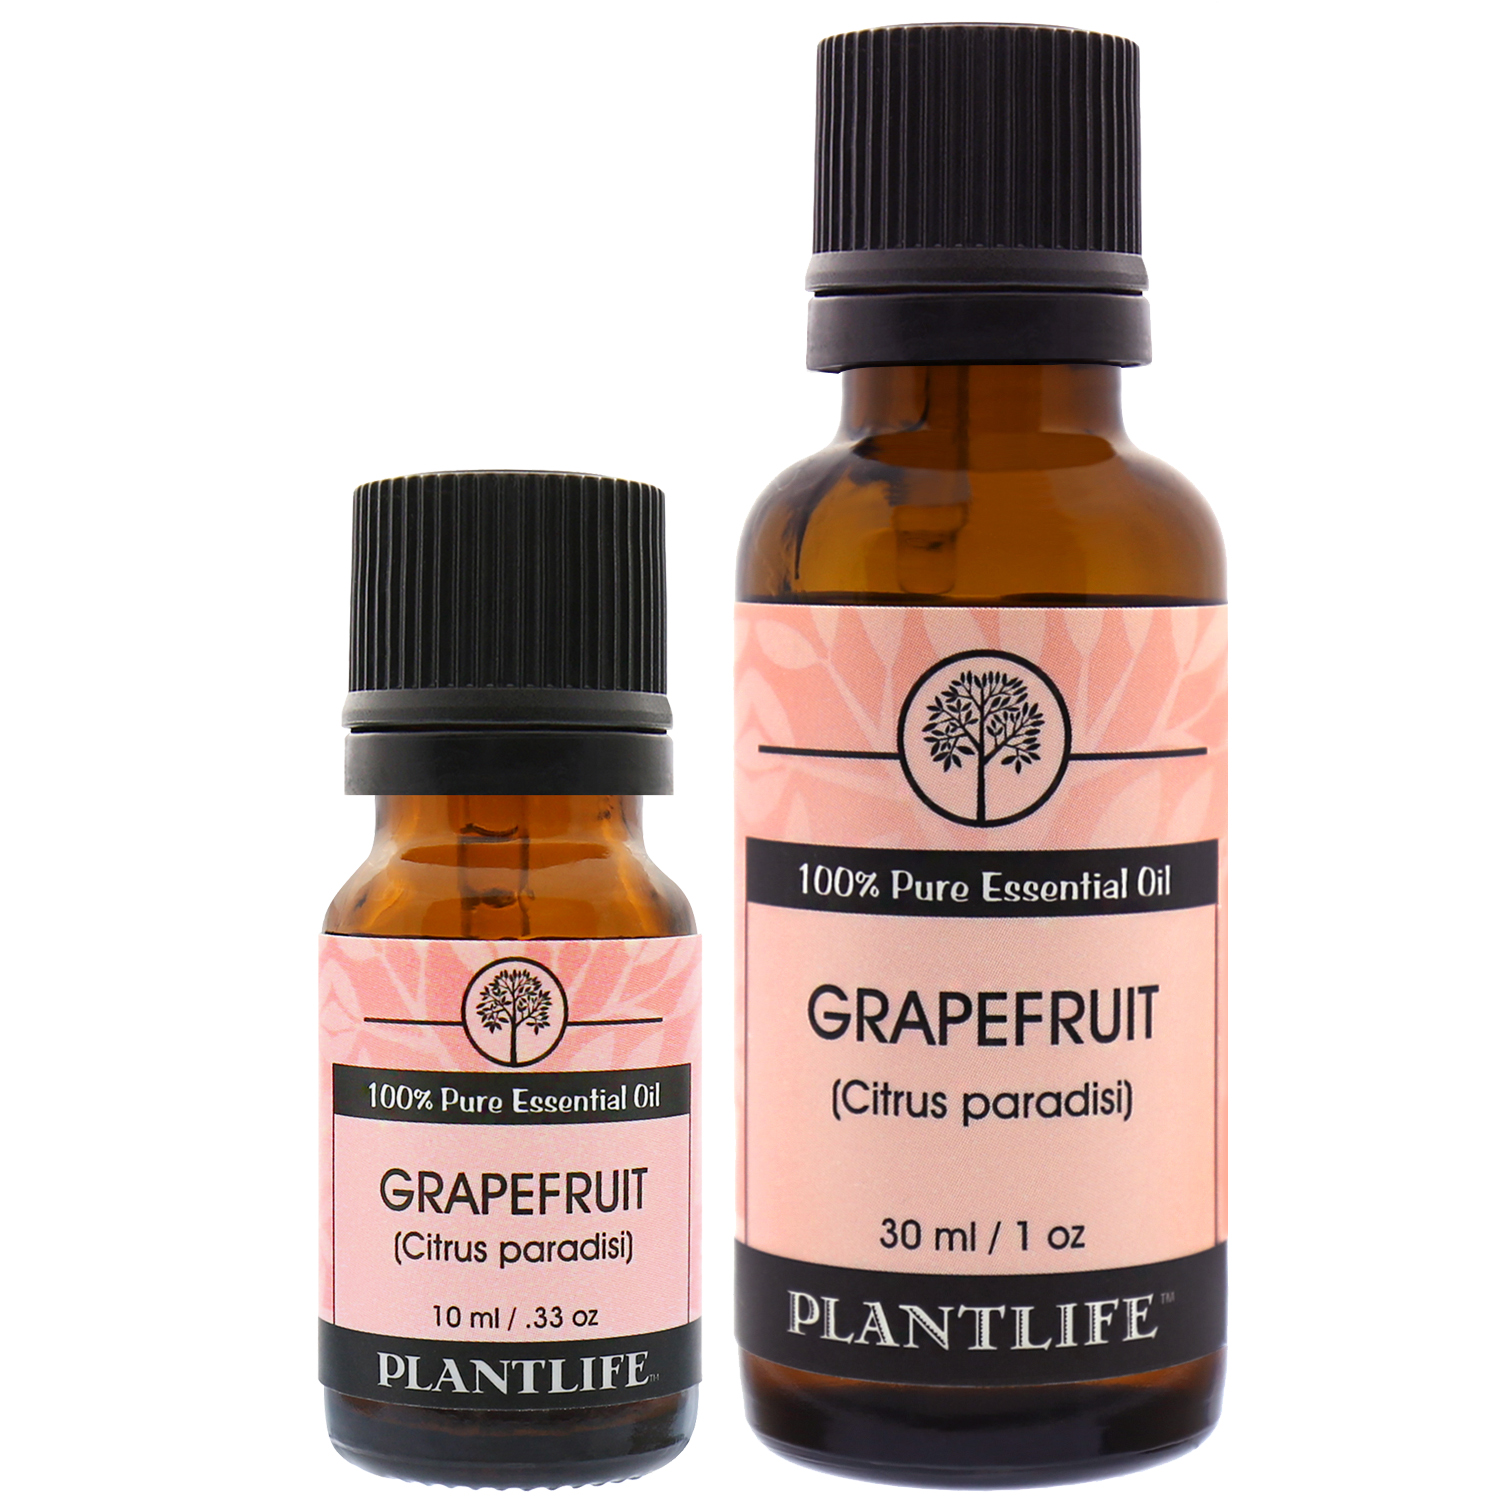 Plantlife Grapefruit 100% Pure Essential Oil